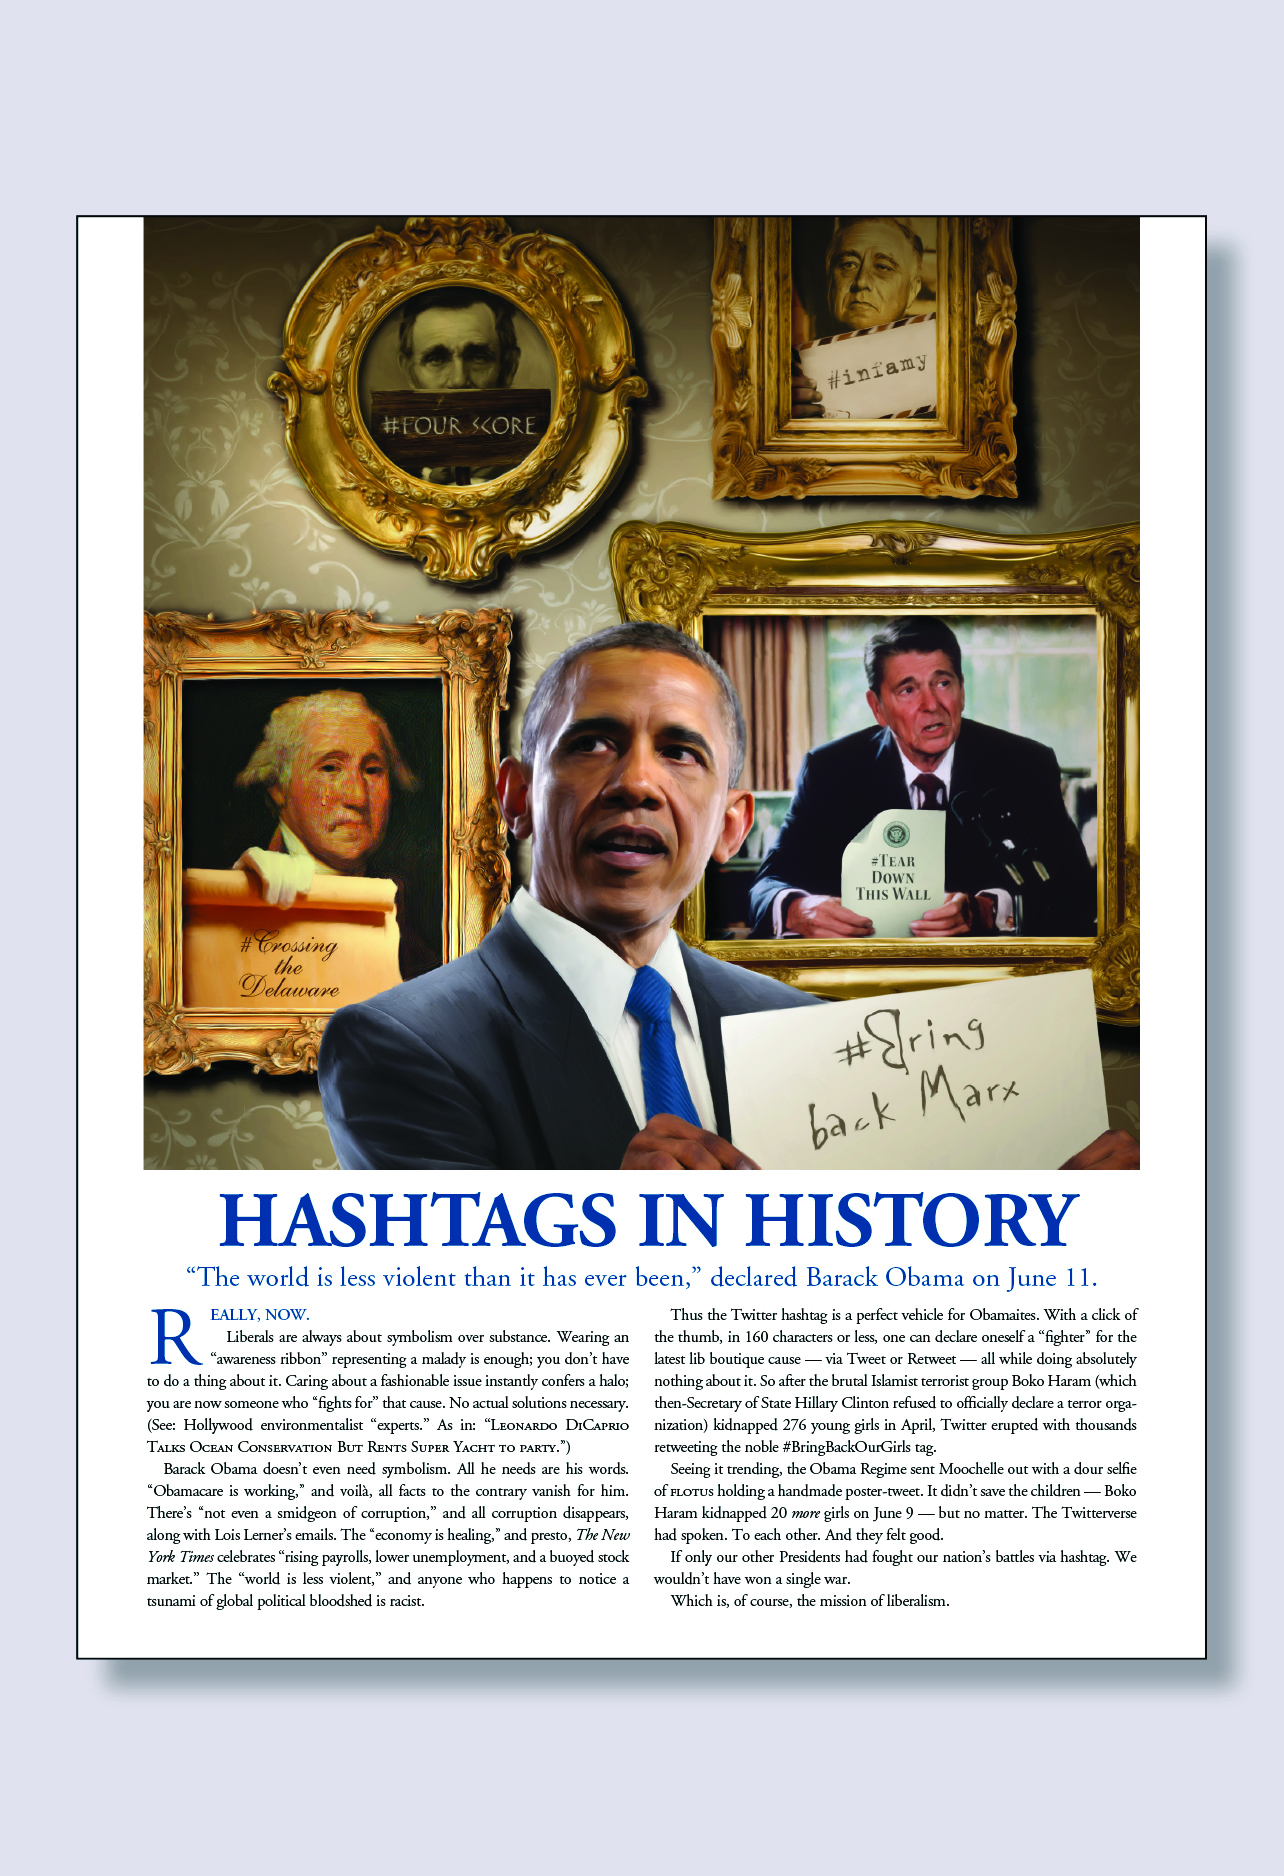 Hashtags in History